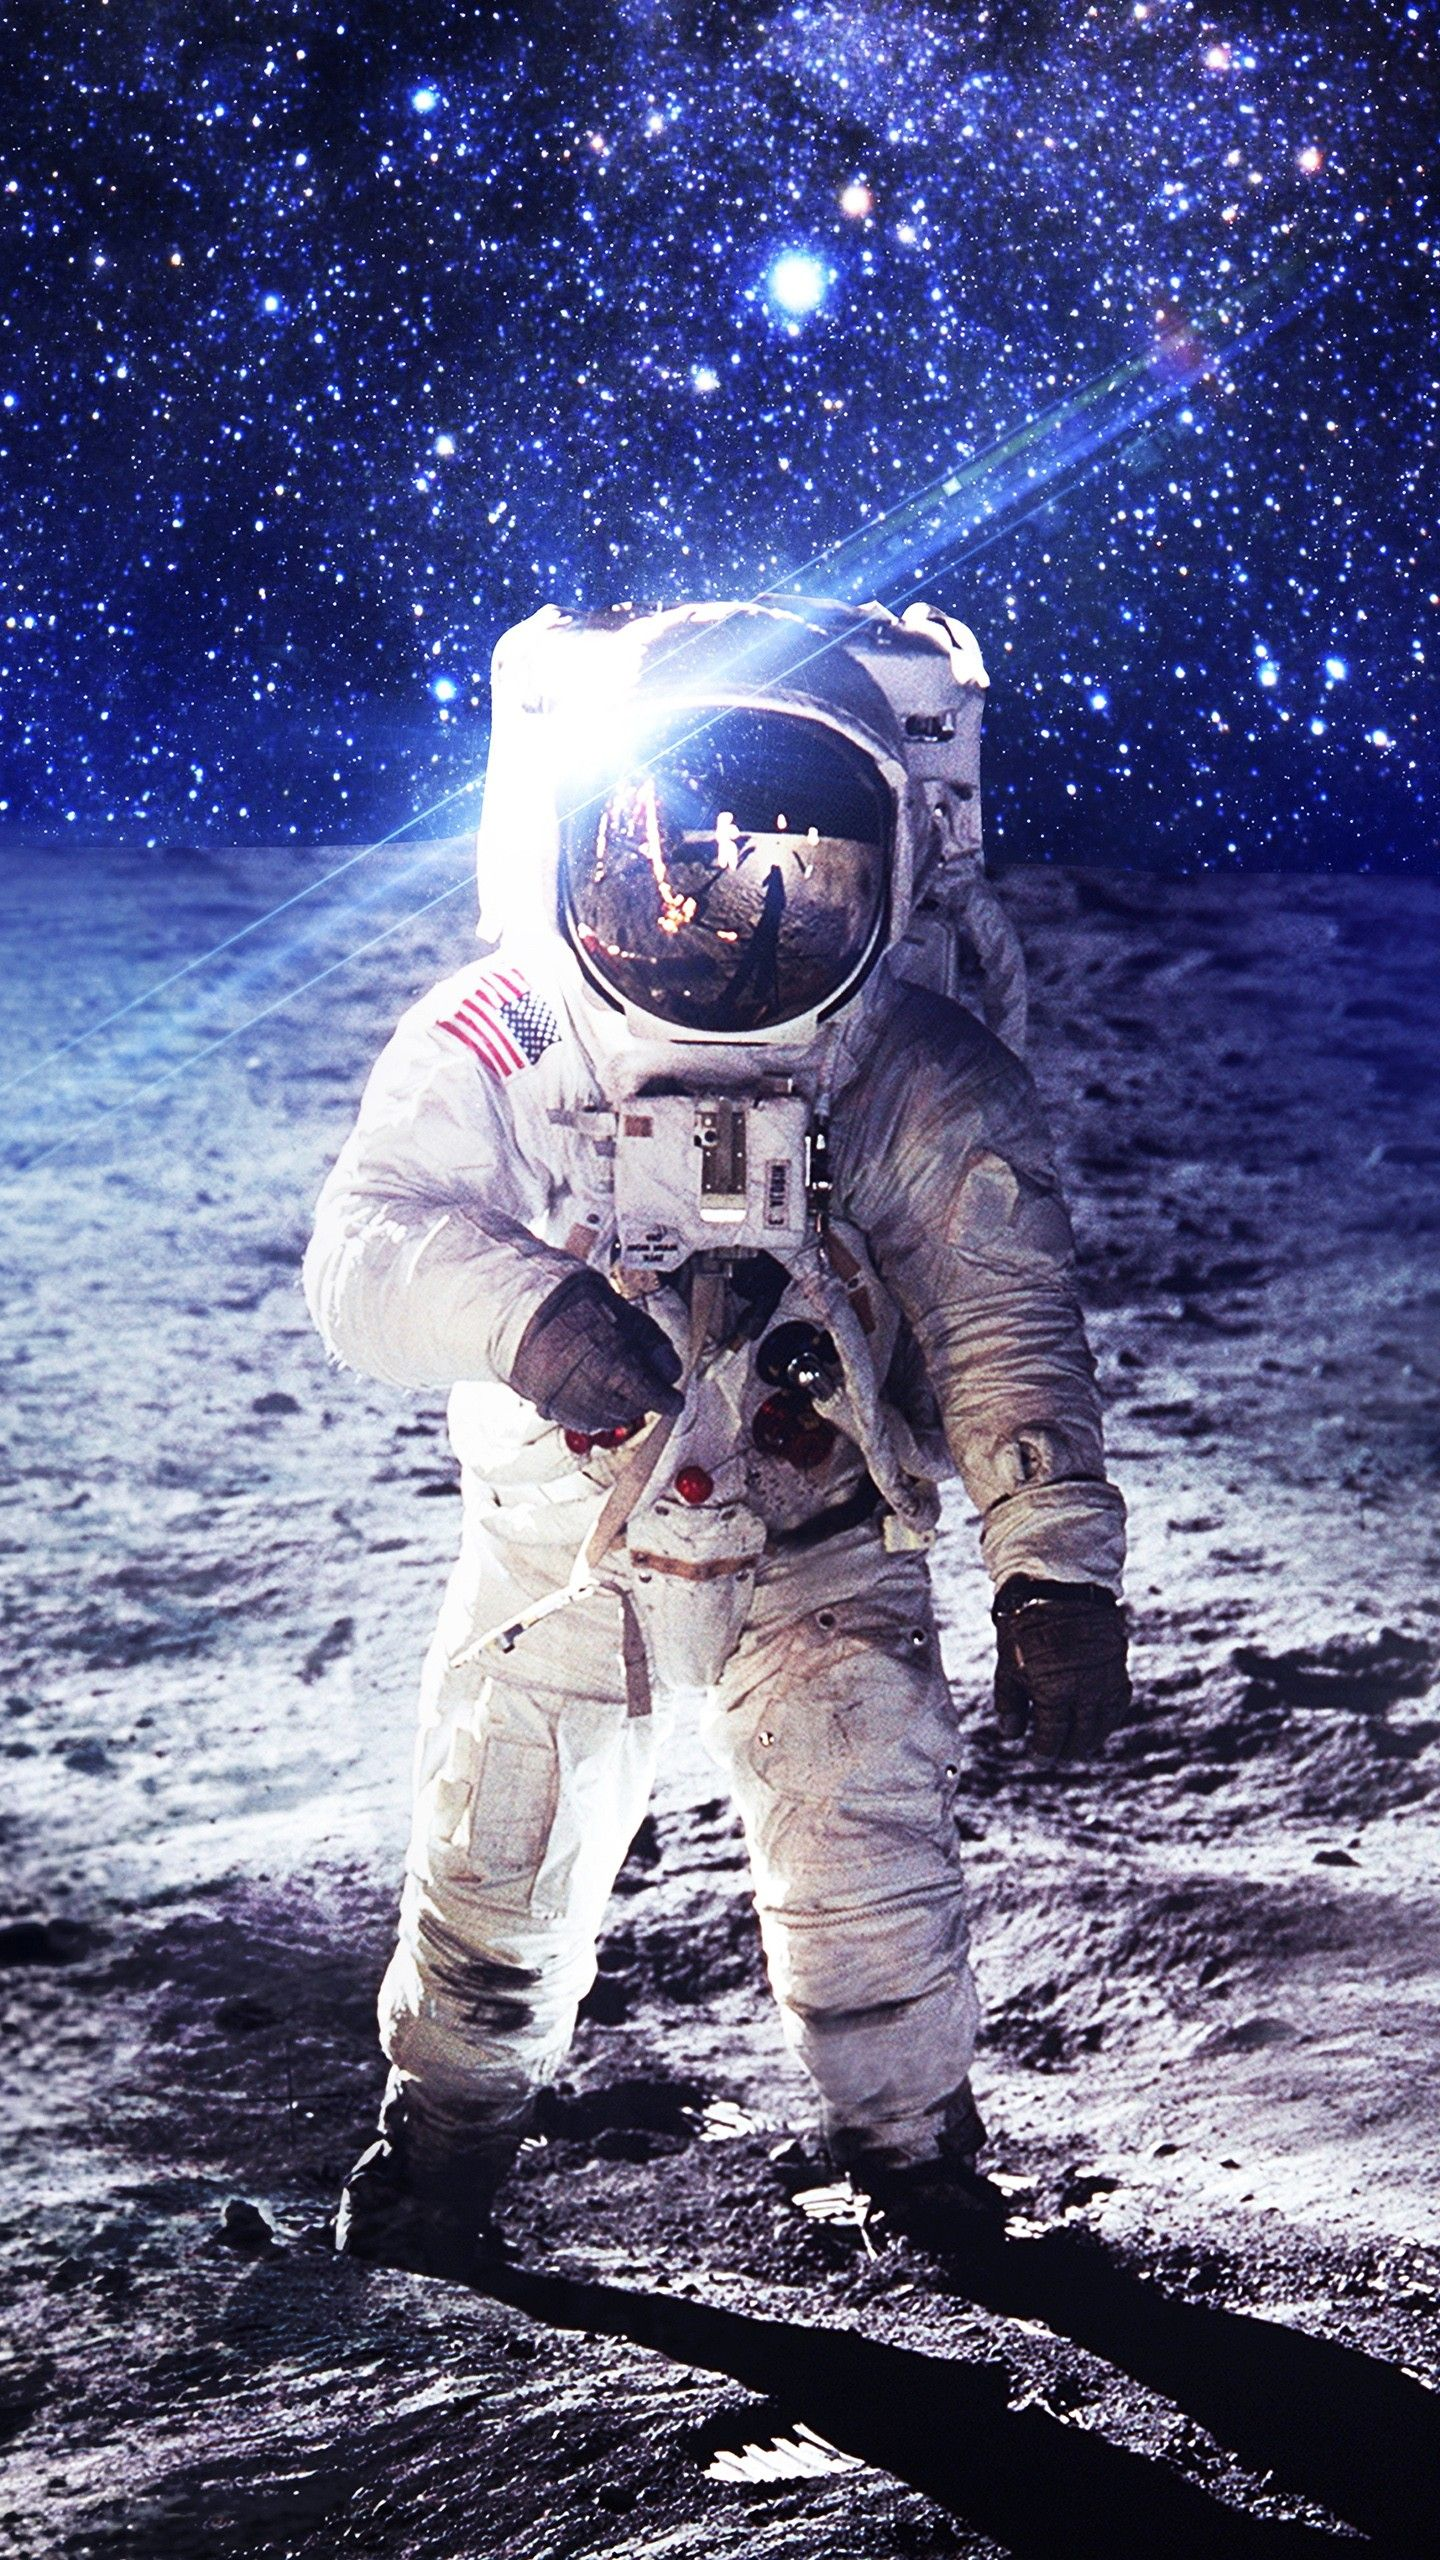 Space Nasa Astronaut On Moon 4k Wallpapers Astronaut Wallpaper